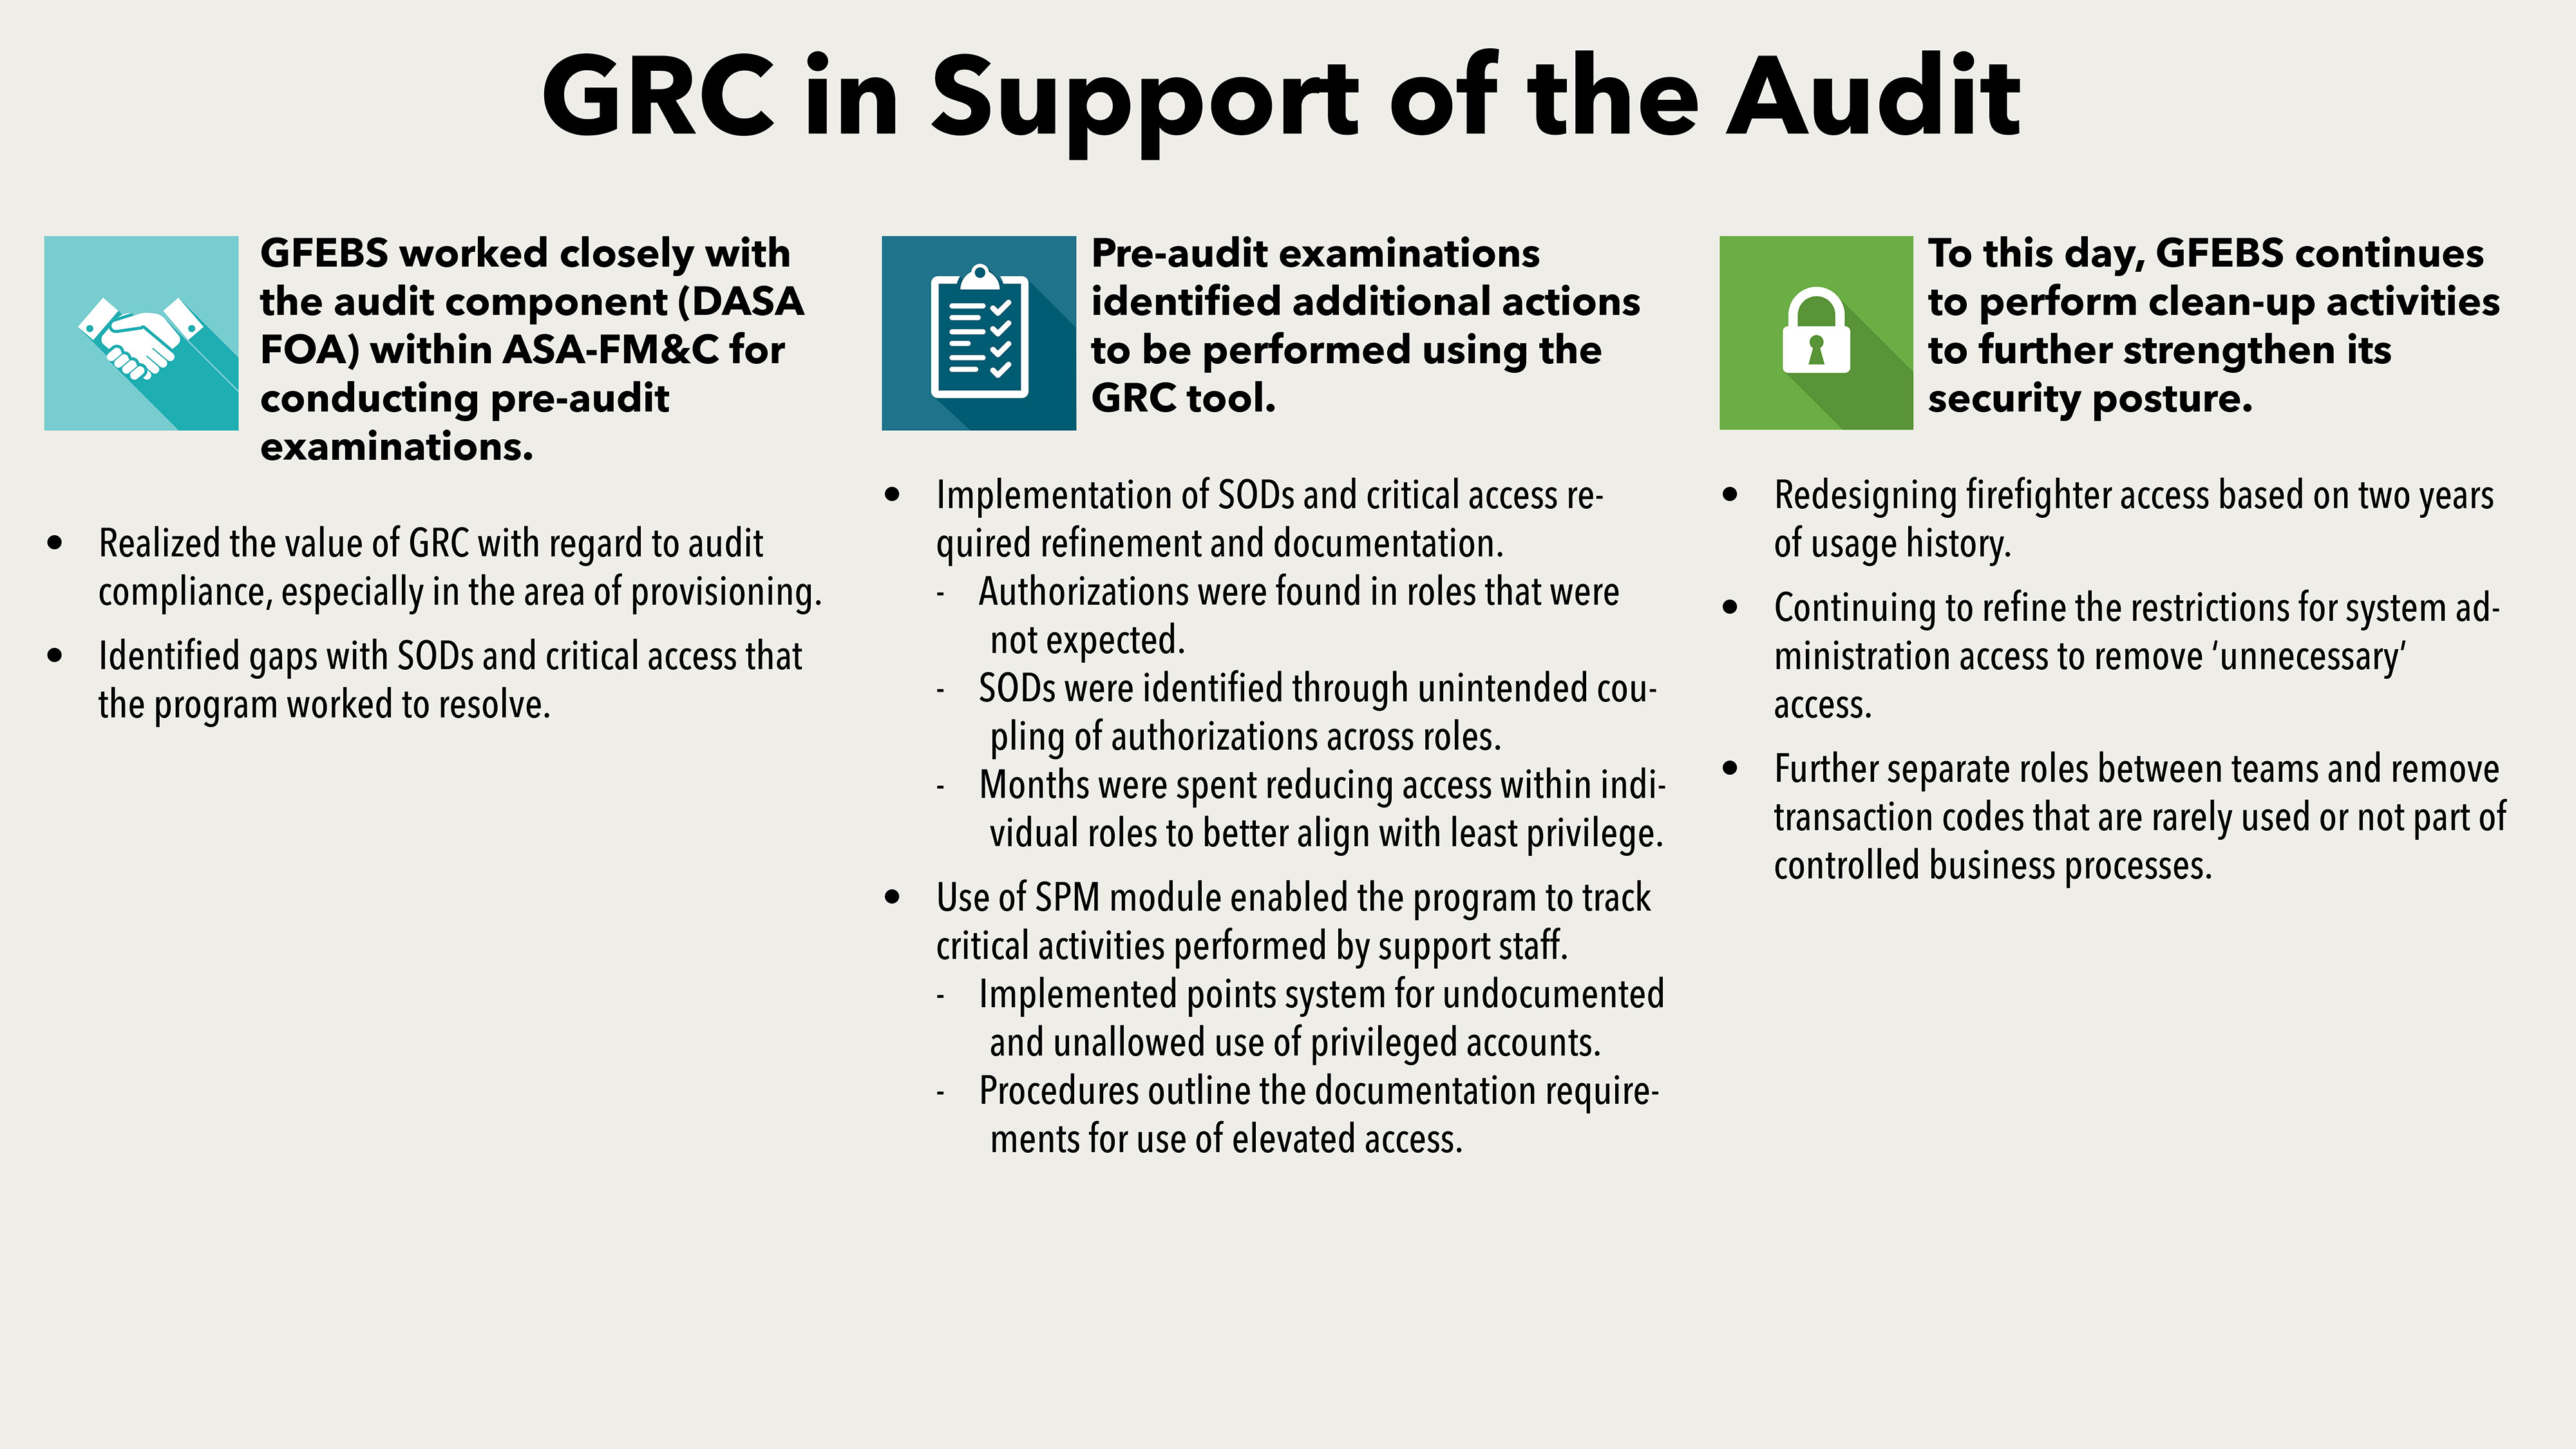 The GFEBS PMO is working closely with DASA(FOA), the assistant secretary of the Army for financial management, the system integrator and Army commands to support the FY18 audit, and continues to take steps to strengthen the system's security posture.